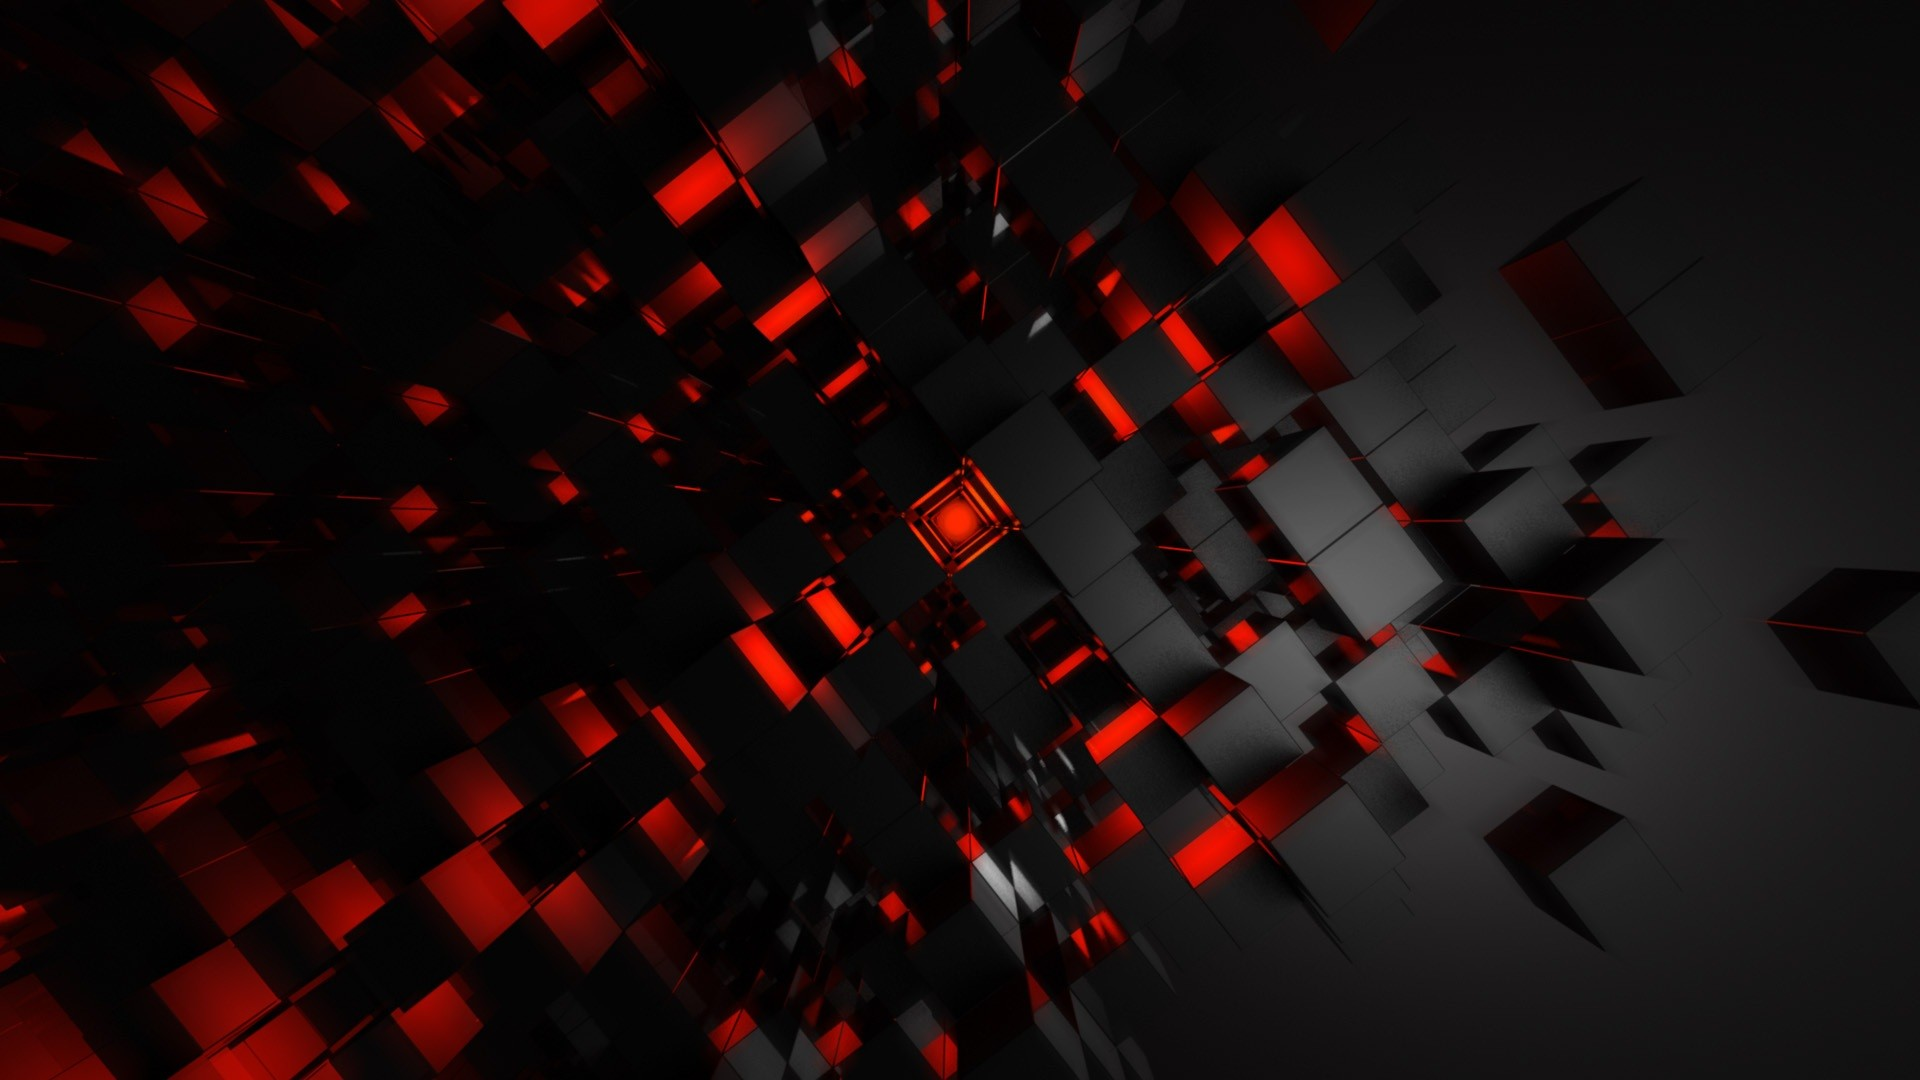 Abstract wallpaper hd 76 pictures 1920x1080 3d abstract wallpapers hd voltagebd Choice Image